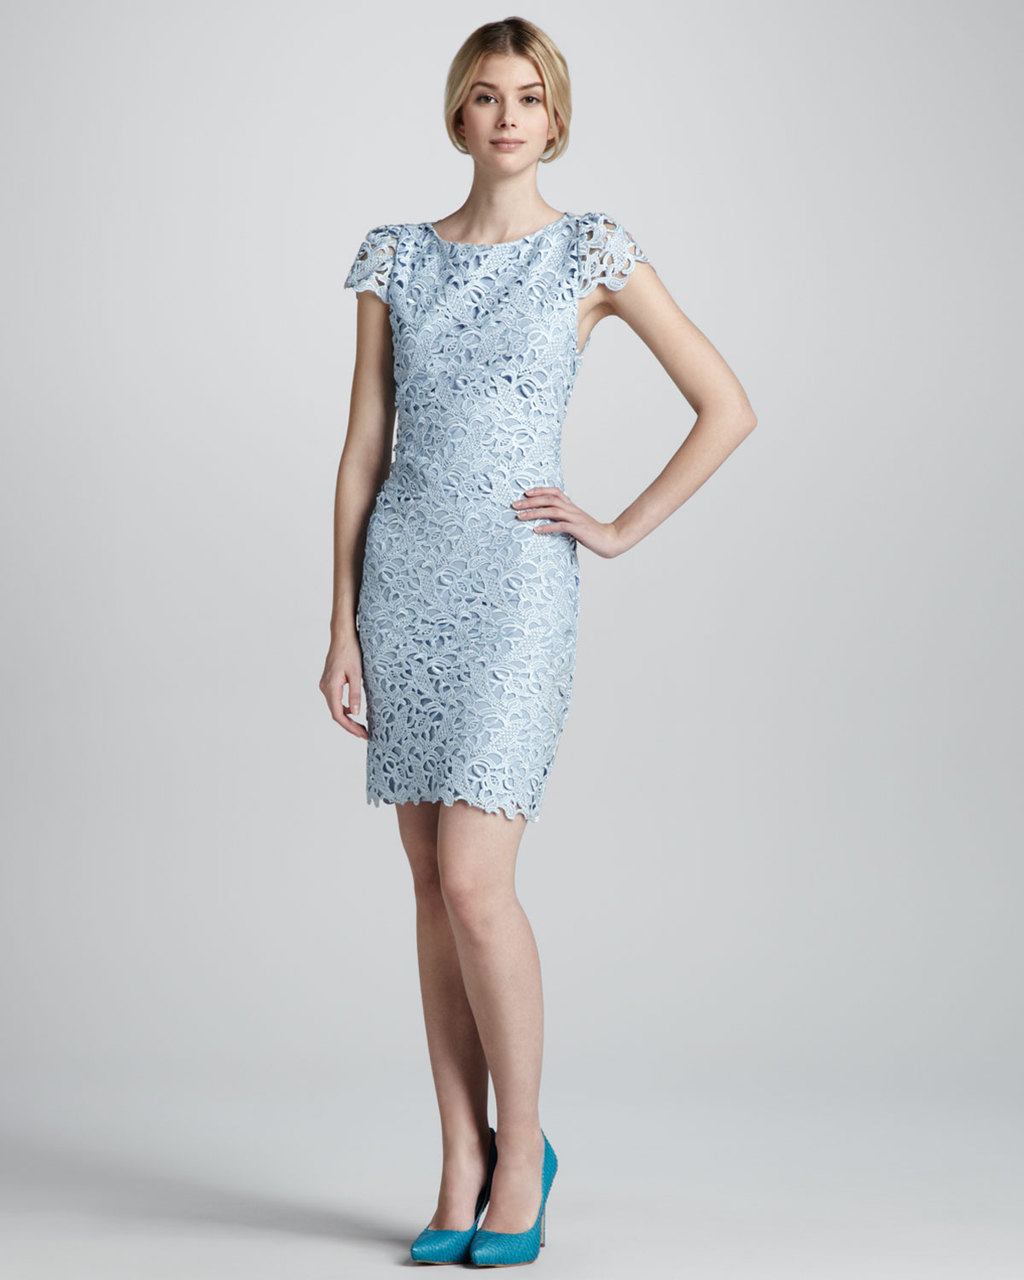 Powder-blue-lace-dress-for-the-reception-or-bridesmaids.full